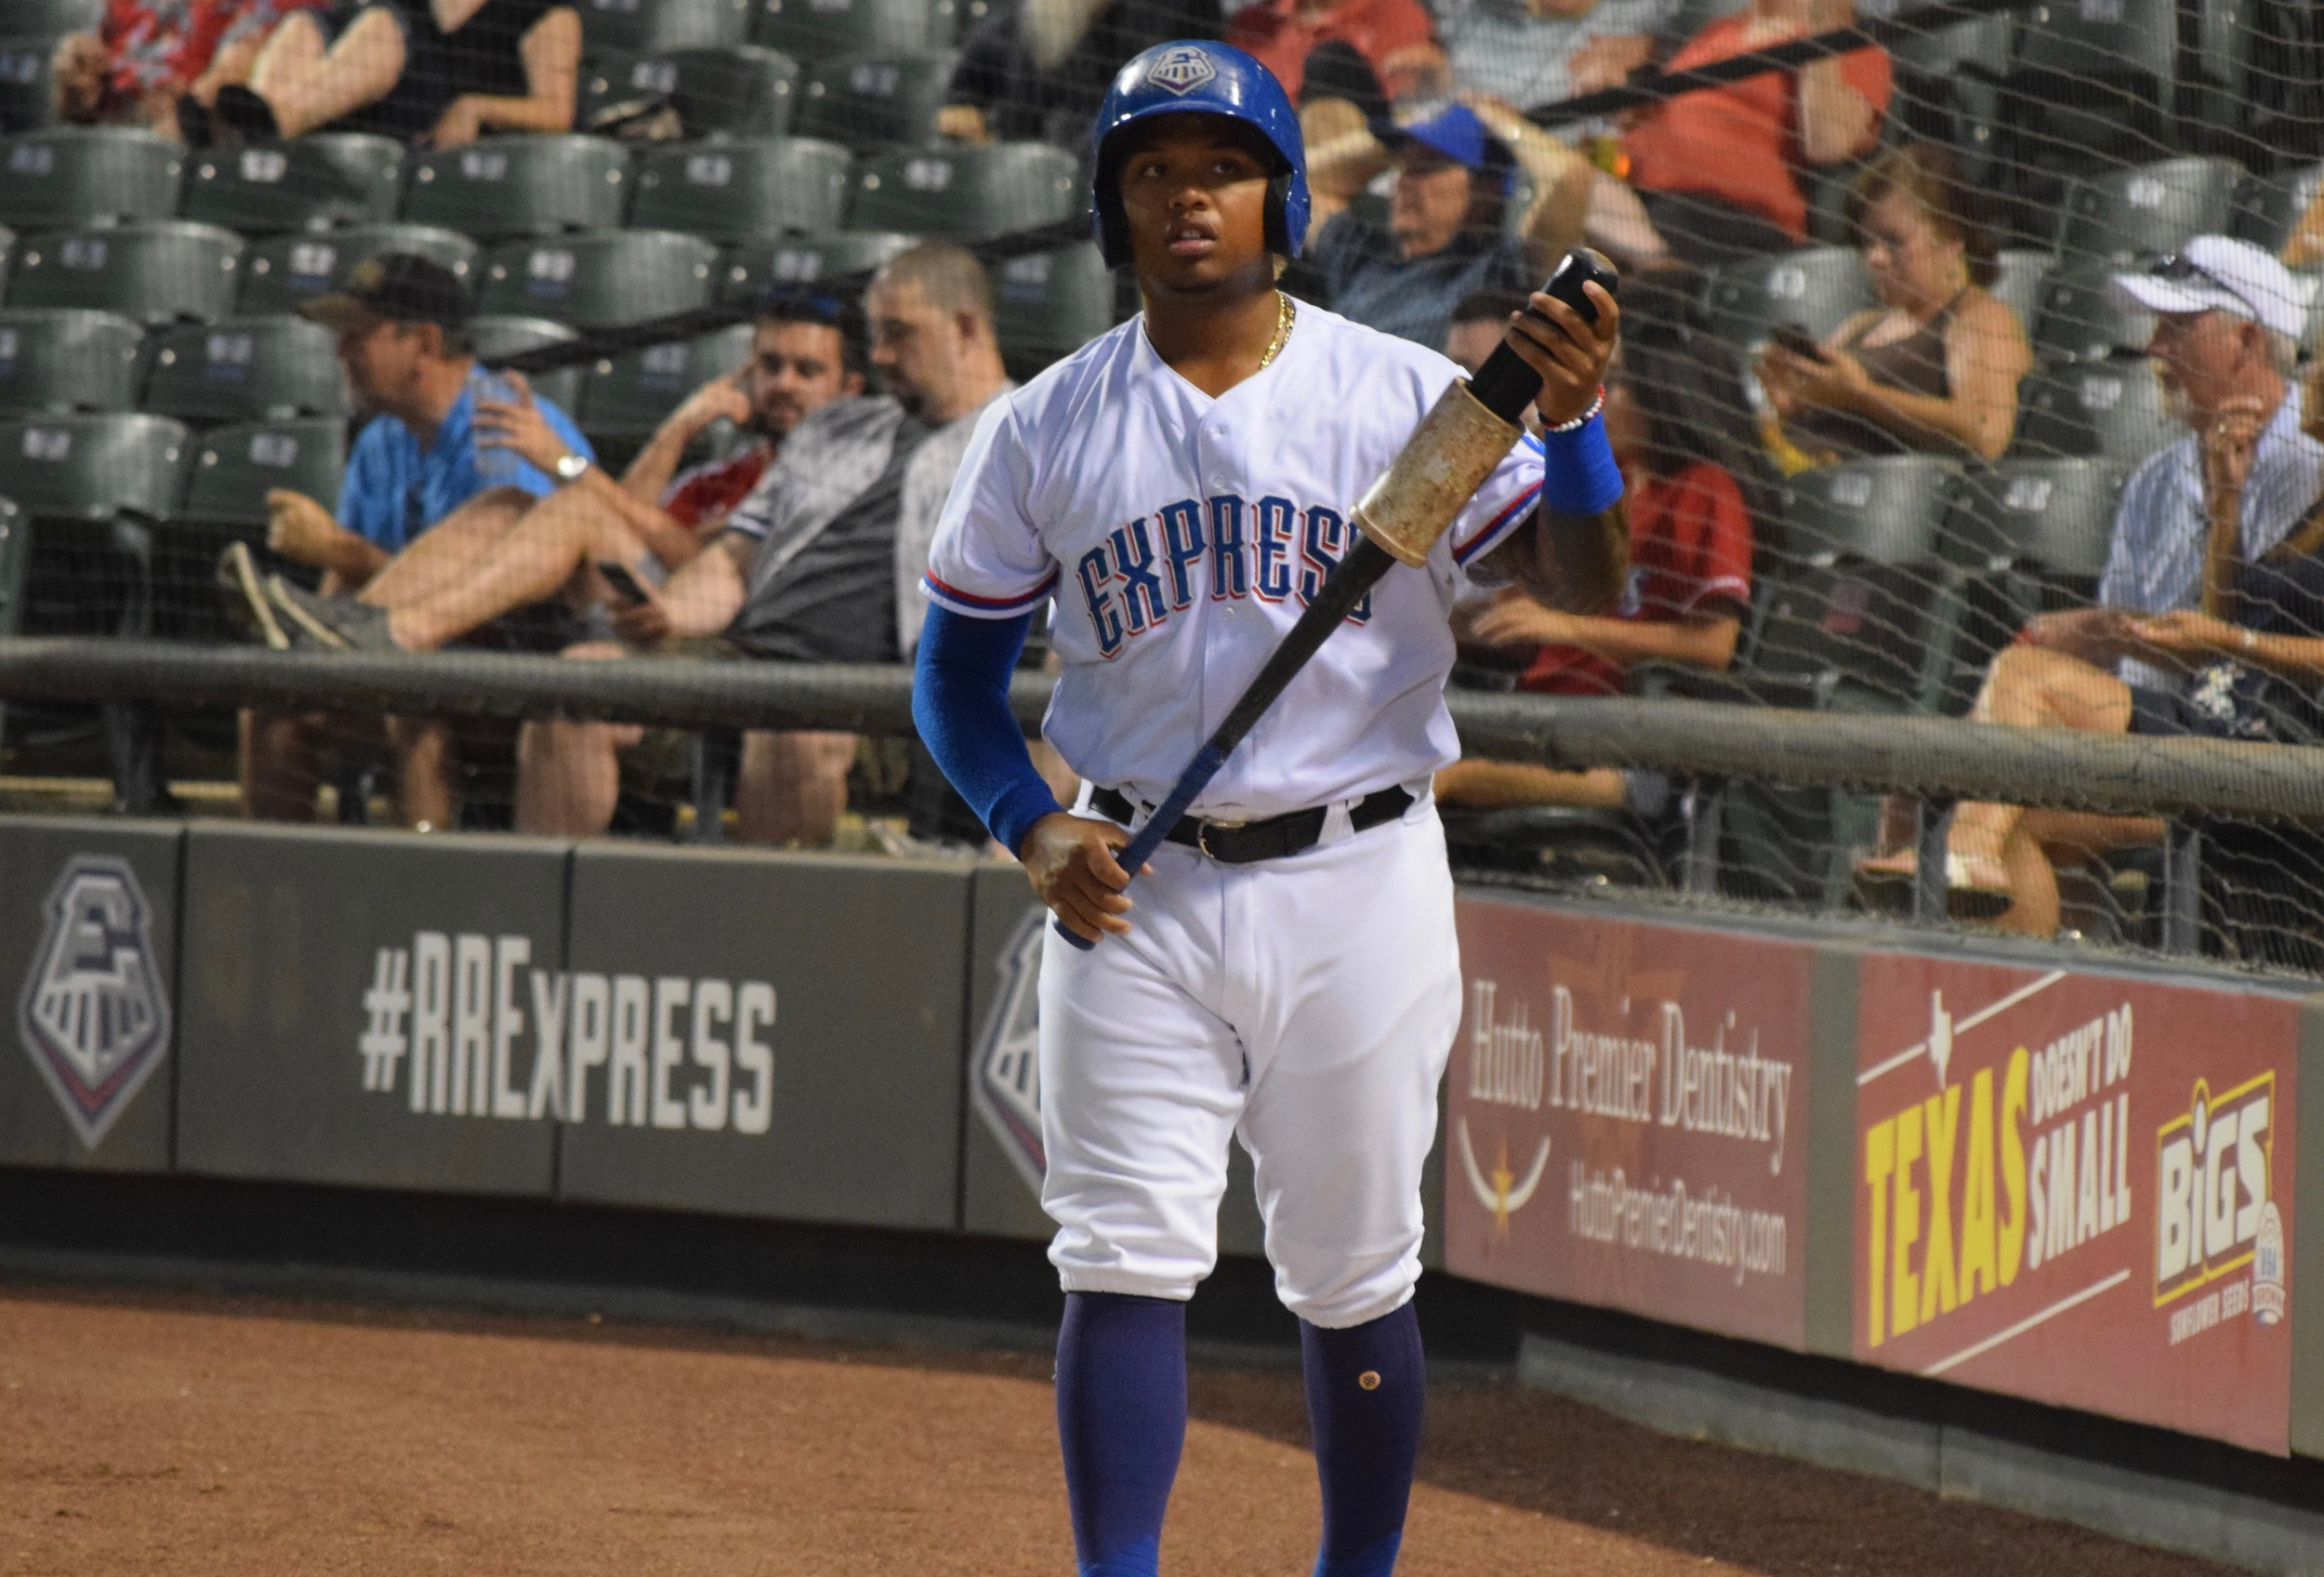 Willie Calhoun made his Round Rock debut Tuesday night and finished 0-for-4 as the Express lost to the El Paso Chihuahuas 4-0.